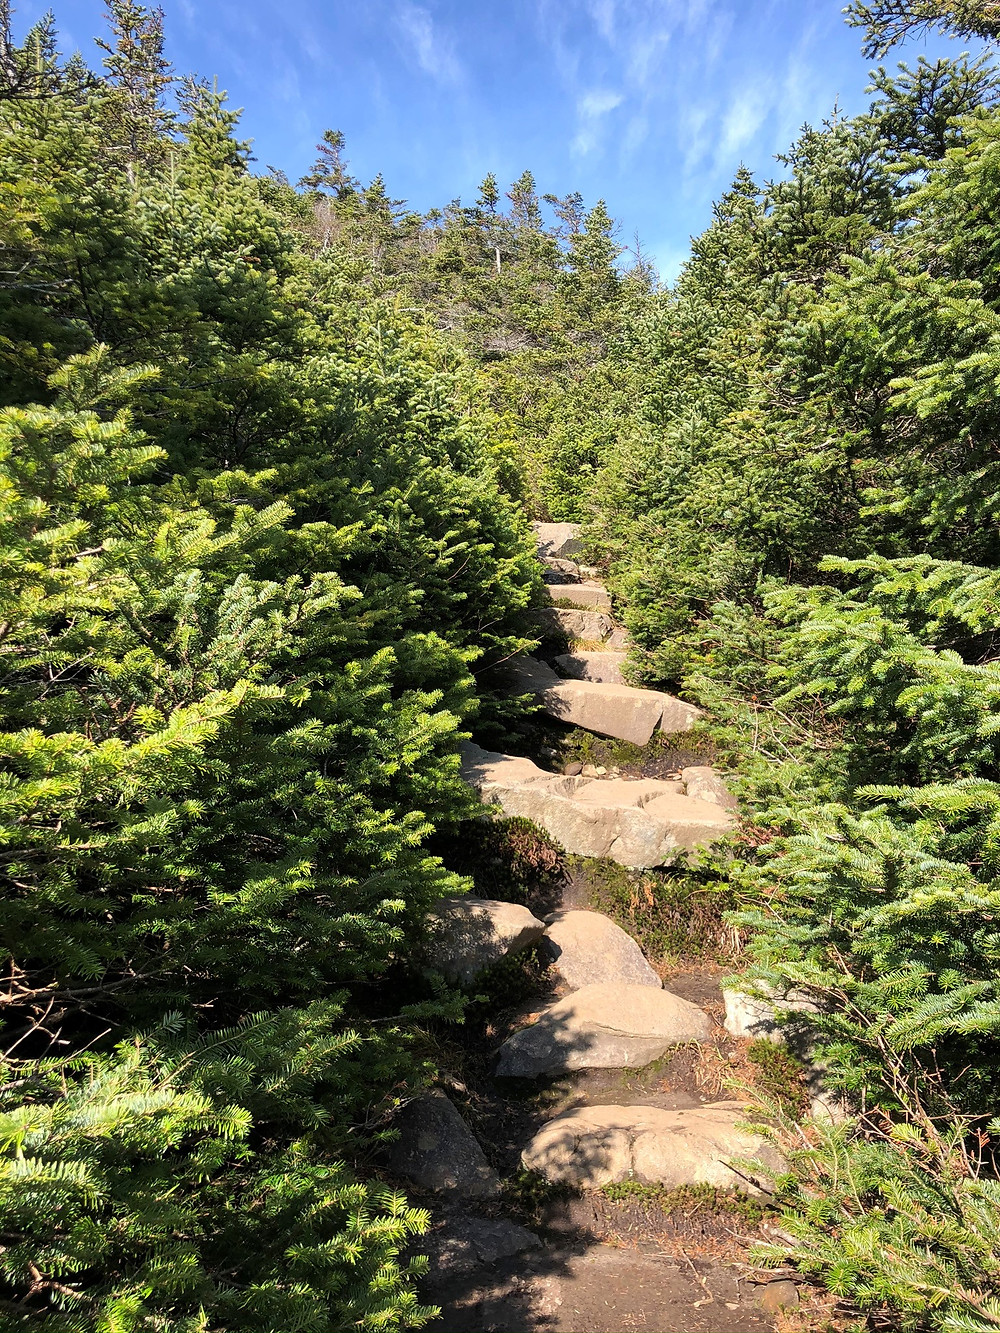 Gorge Brook trail continued up rocky switchbacks as trees grew shorter. Mt Moosilauke in NH. NH 4000 footer